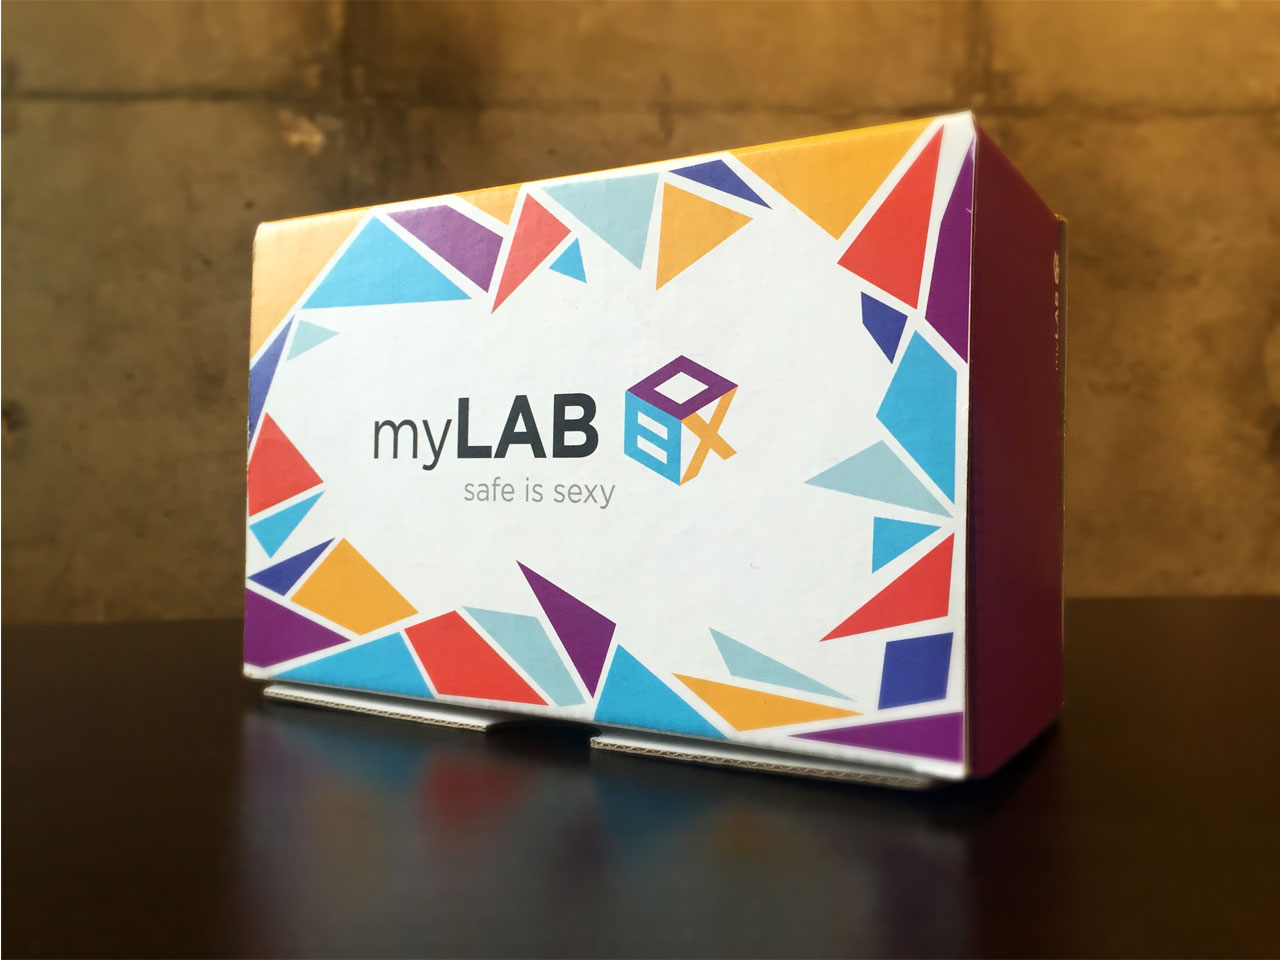 myLAB STI test kit